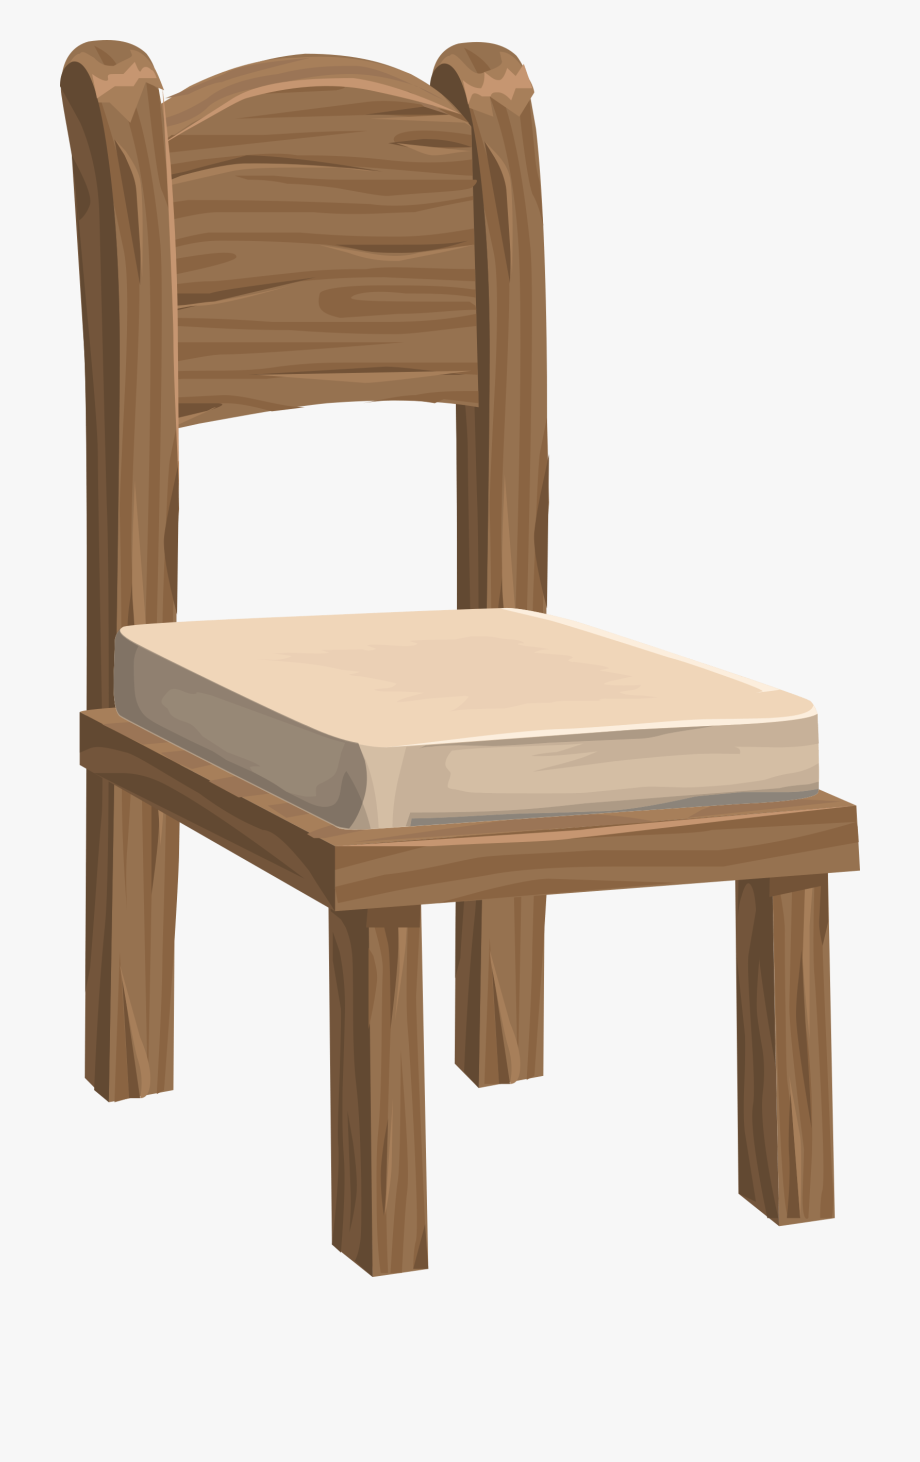 Clipart Of Chair.